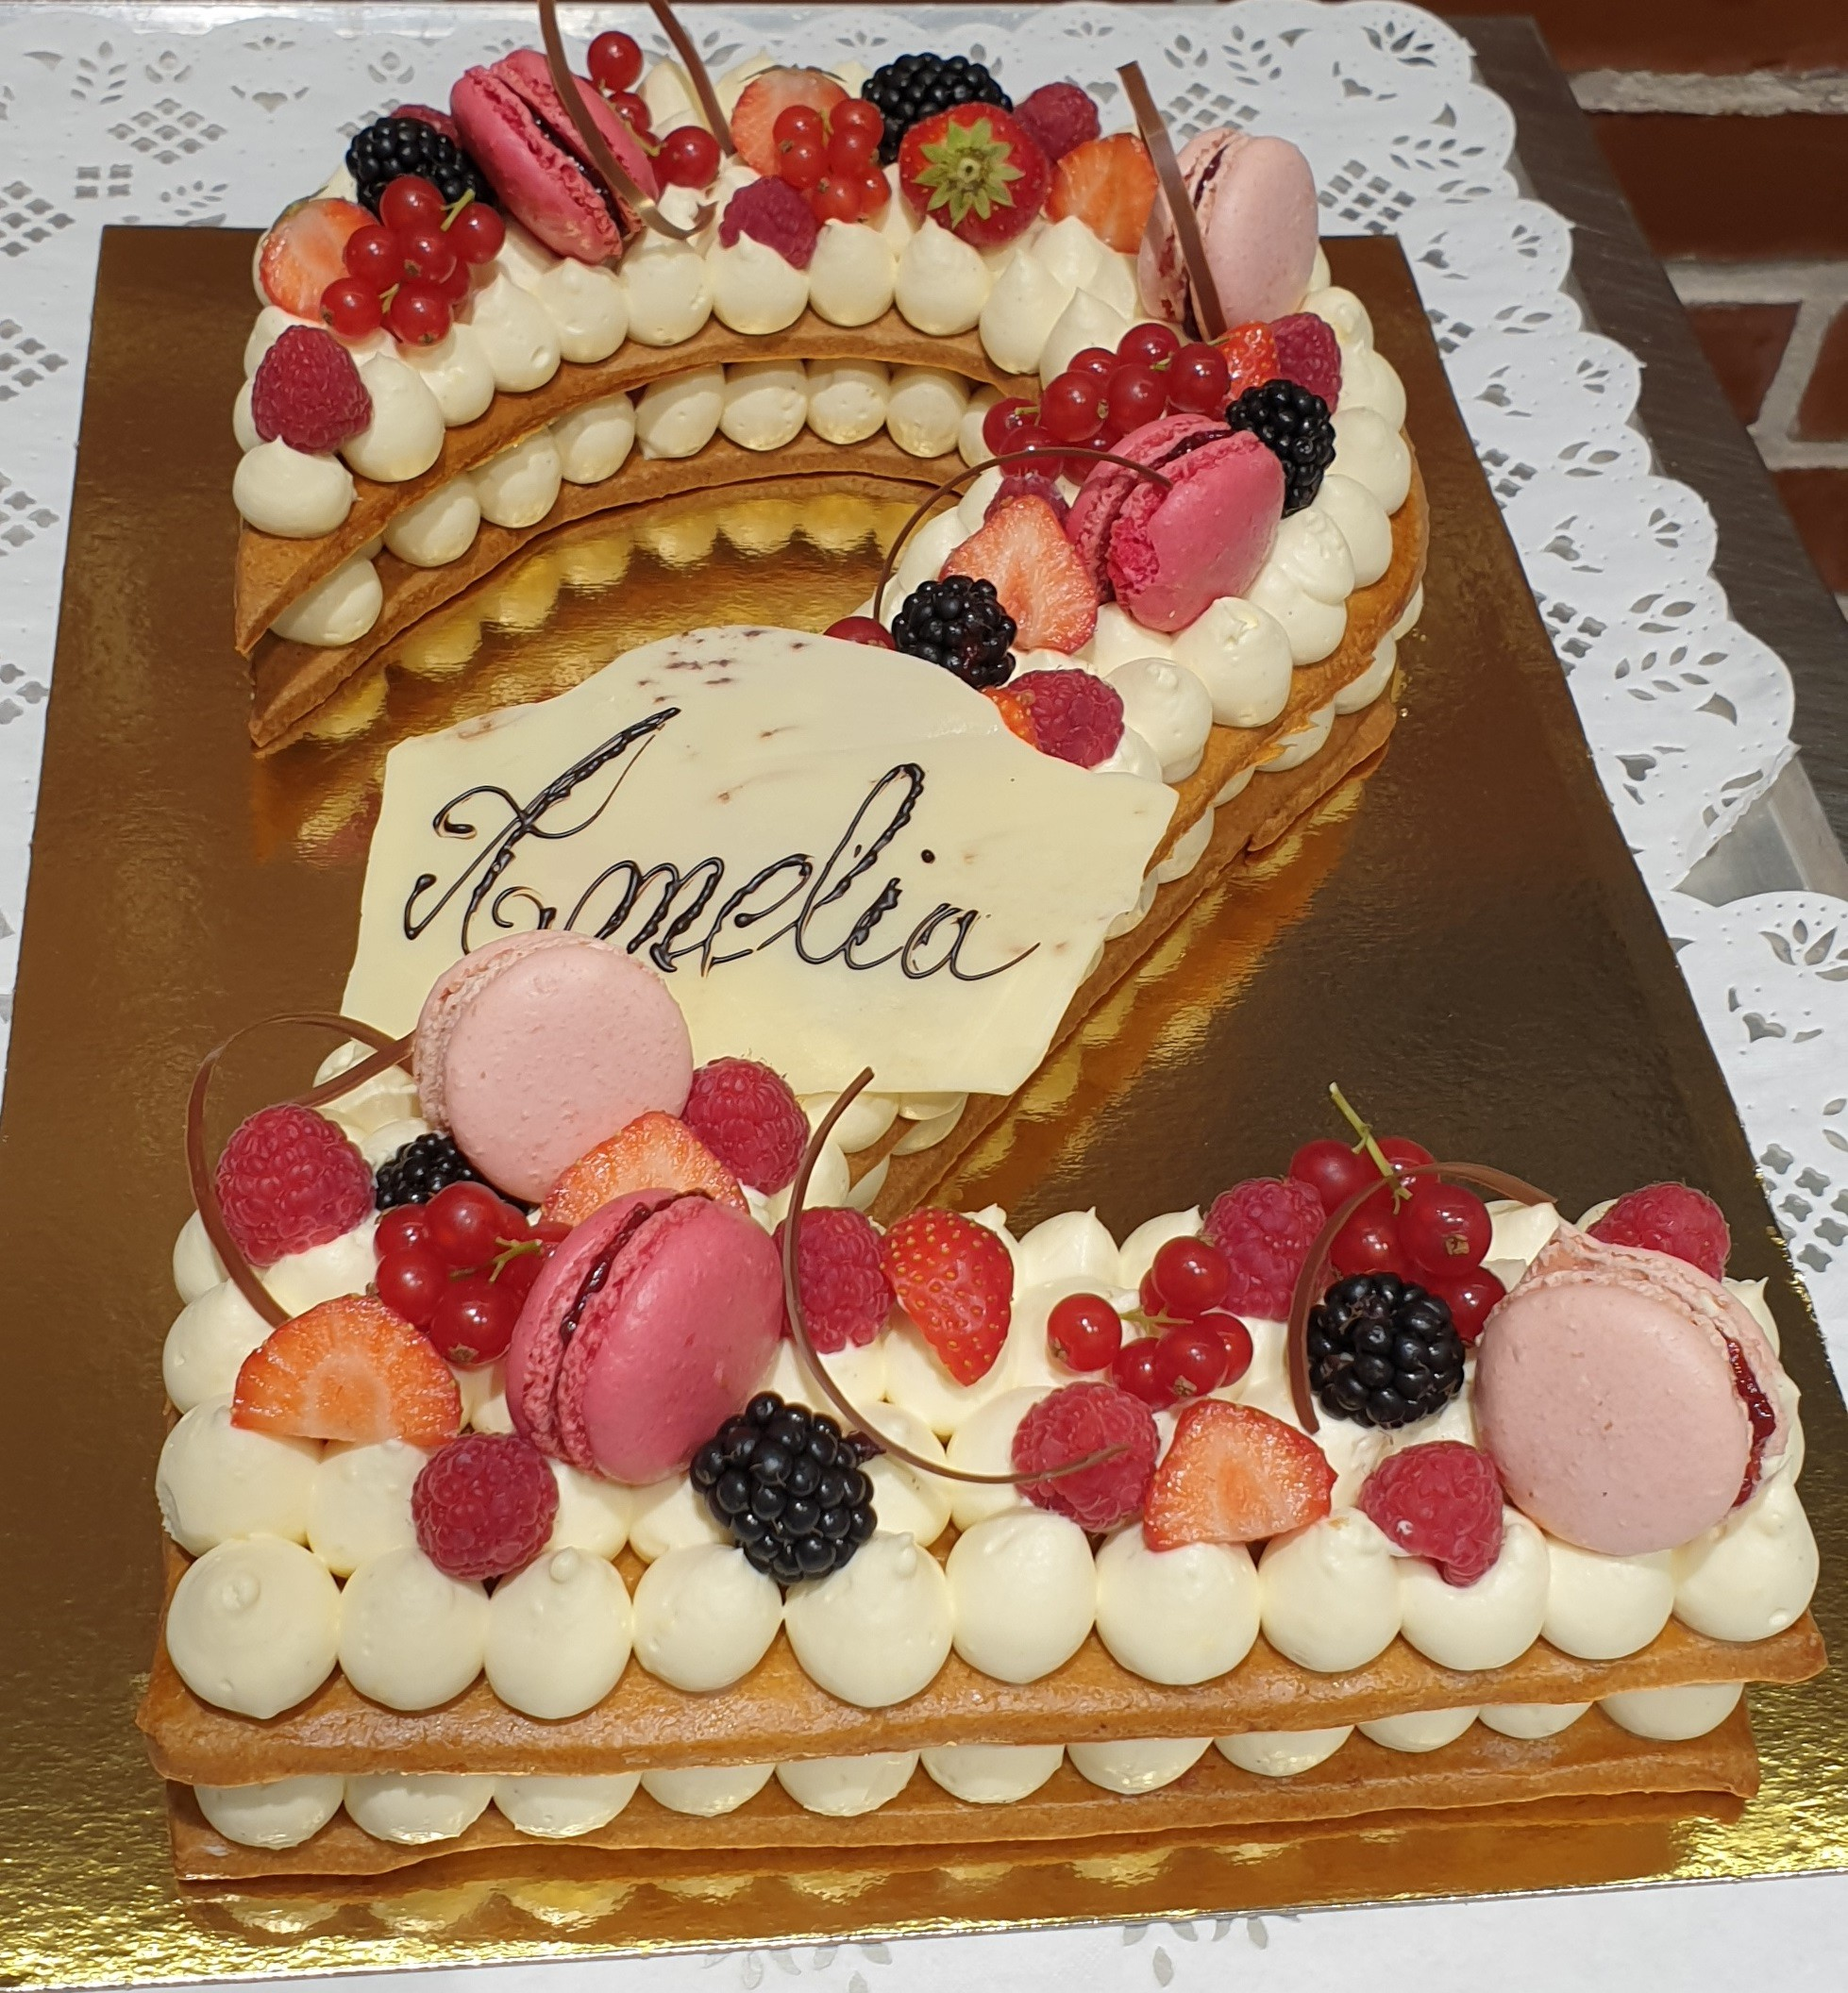 Number cake 2 aux fruits